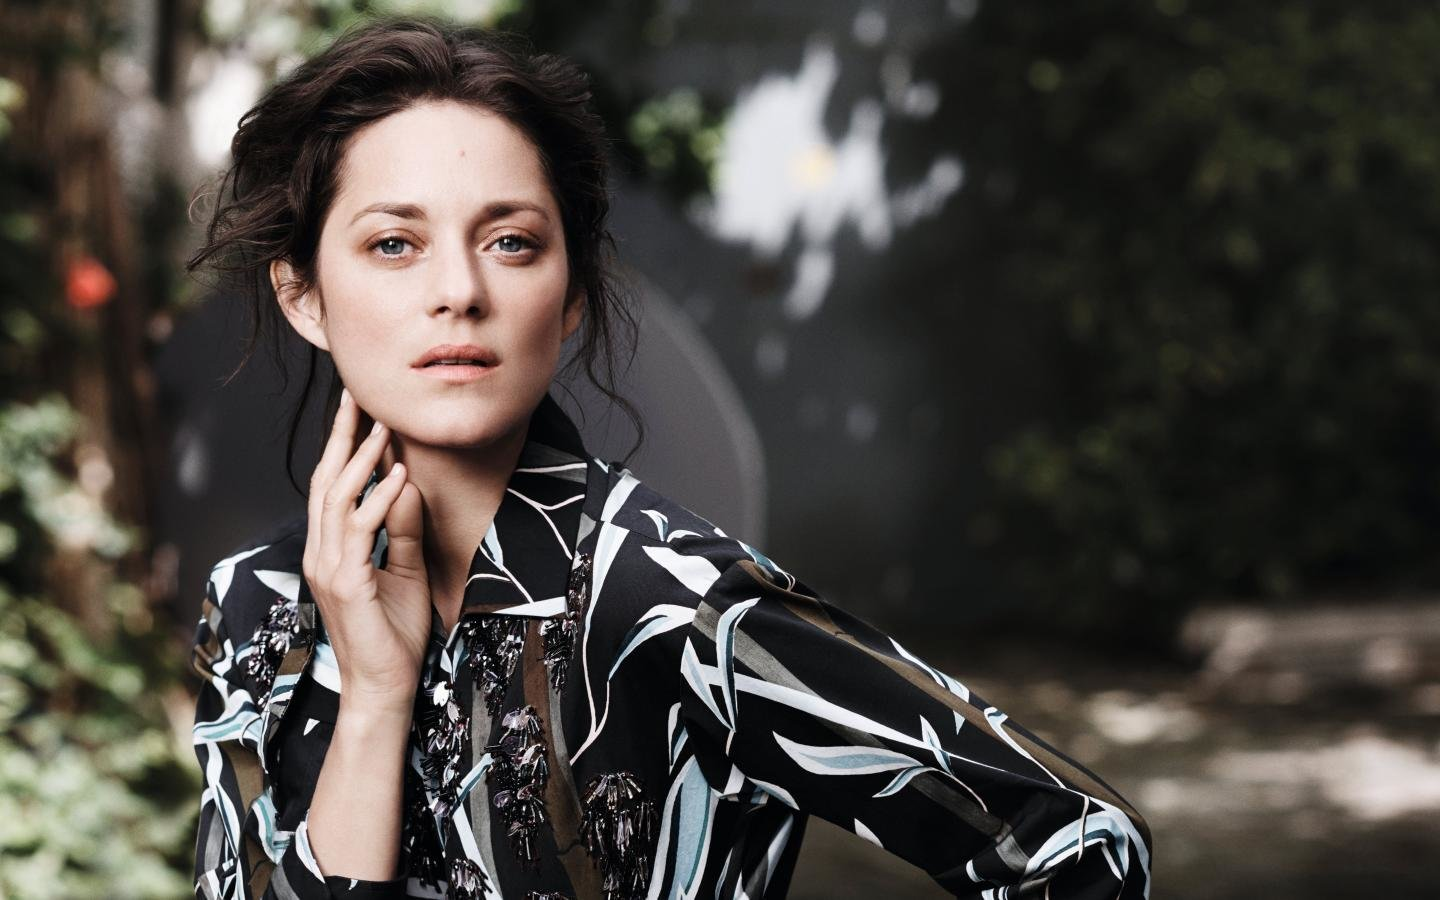 Free download Marion Cotillard background ID:146122 hd 1440x900 for computer